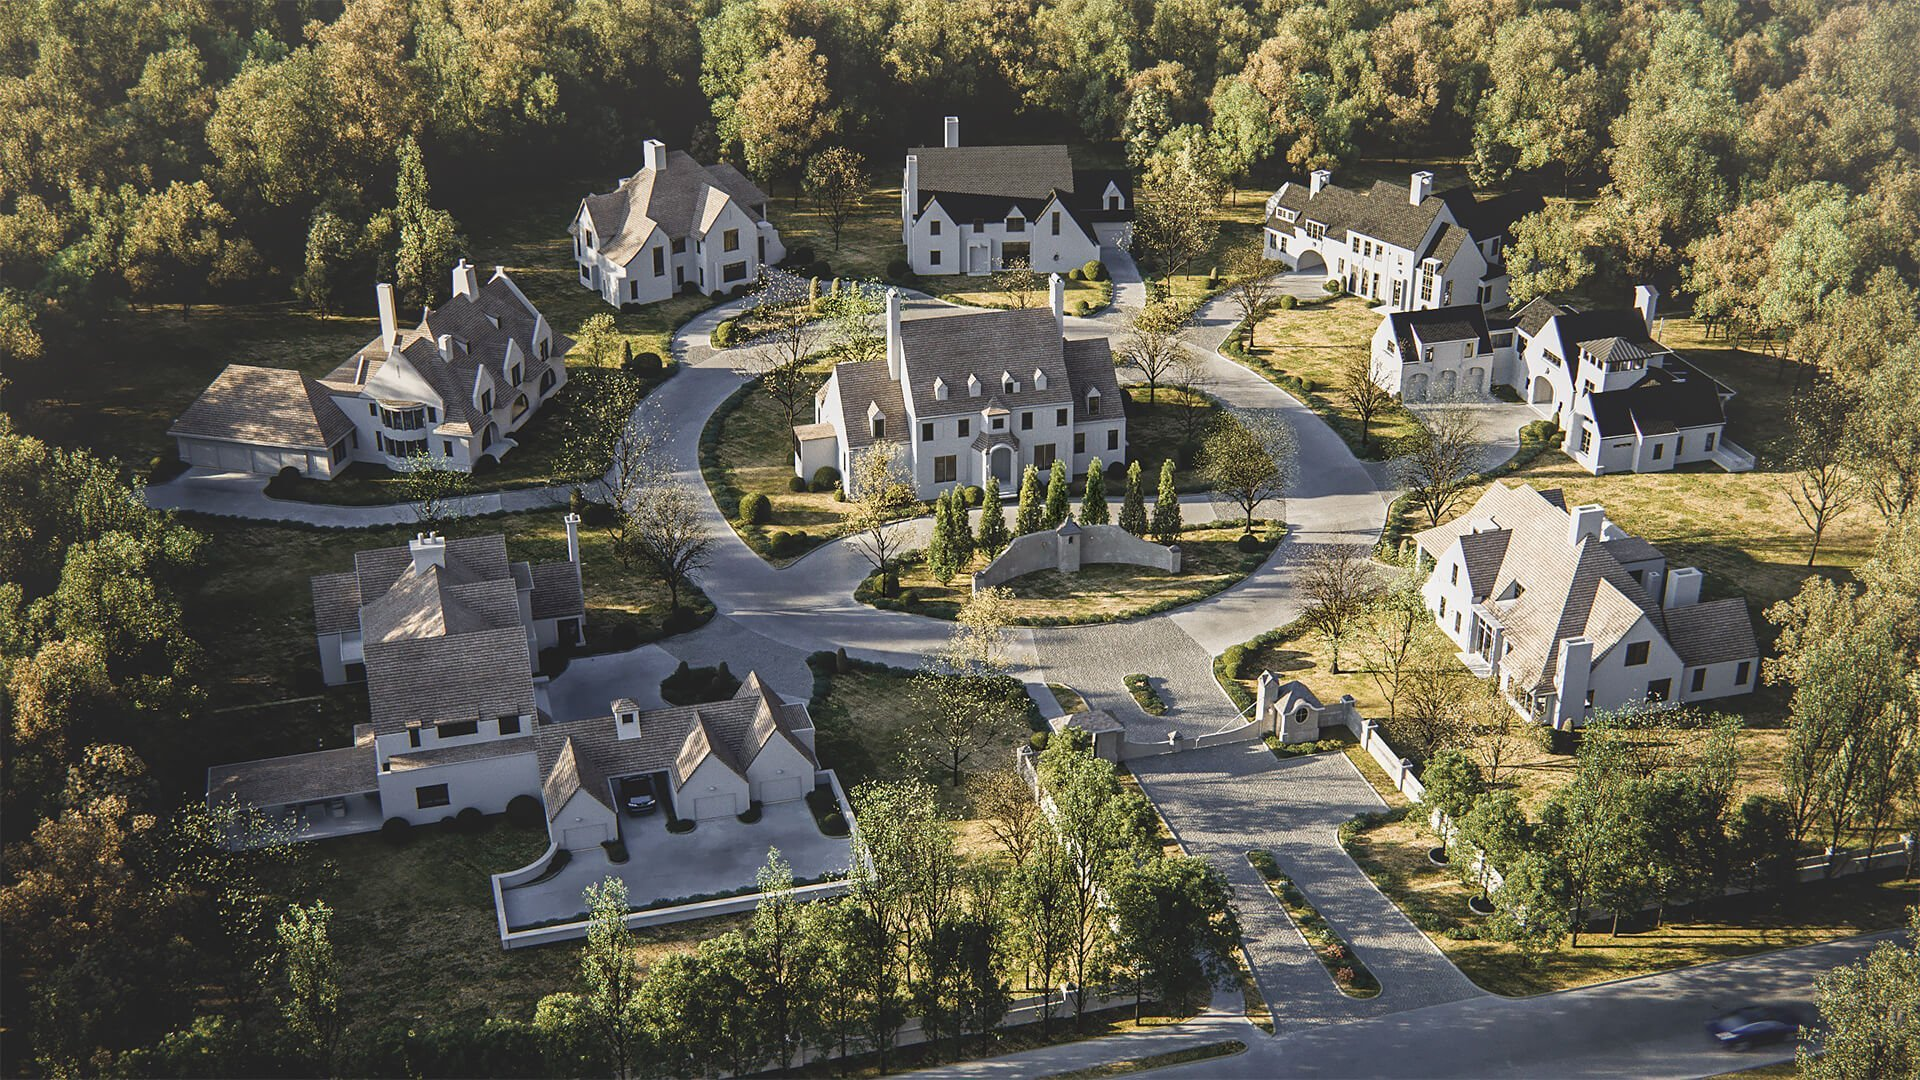 3D Exterior Visualization of a Residential Neighbourhood